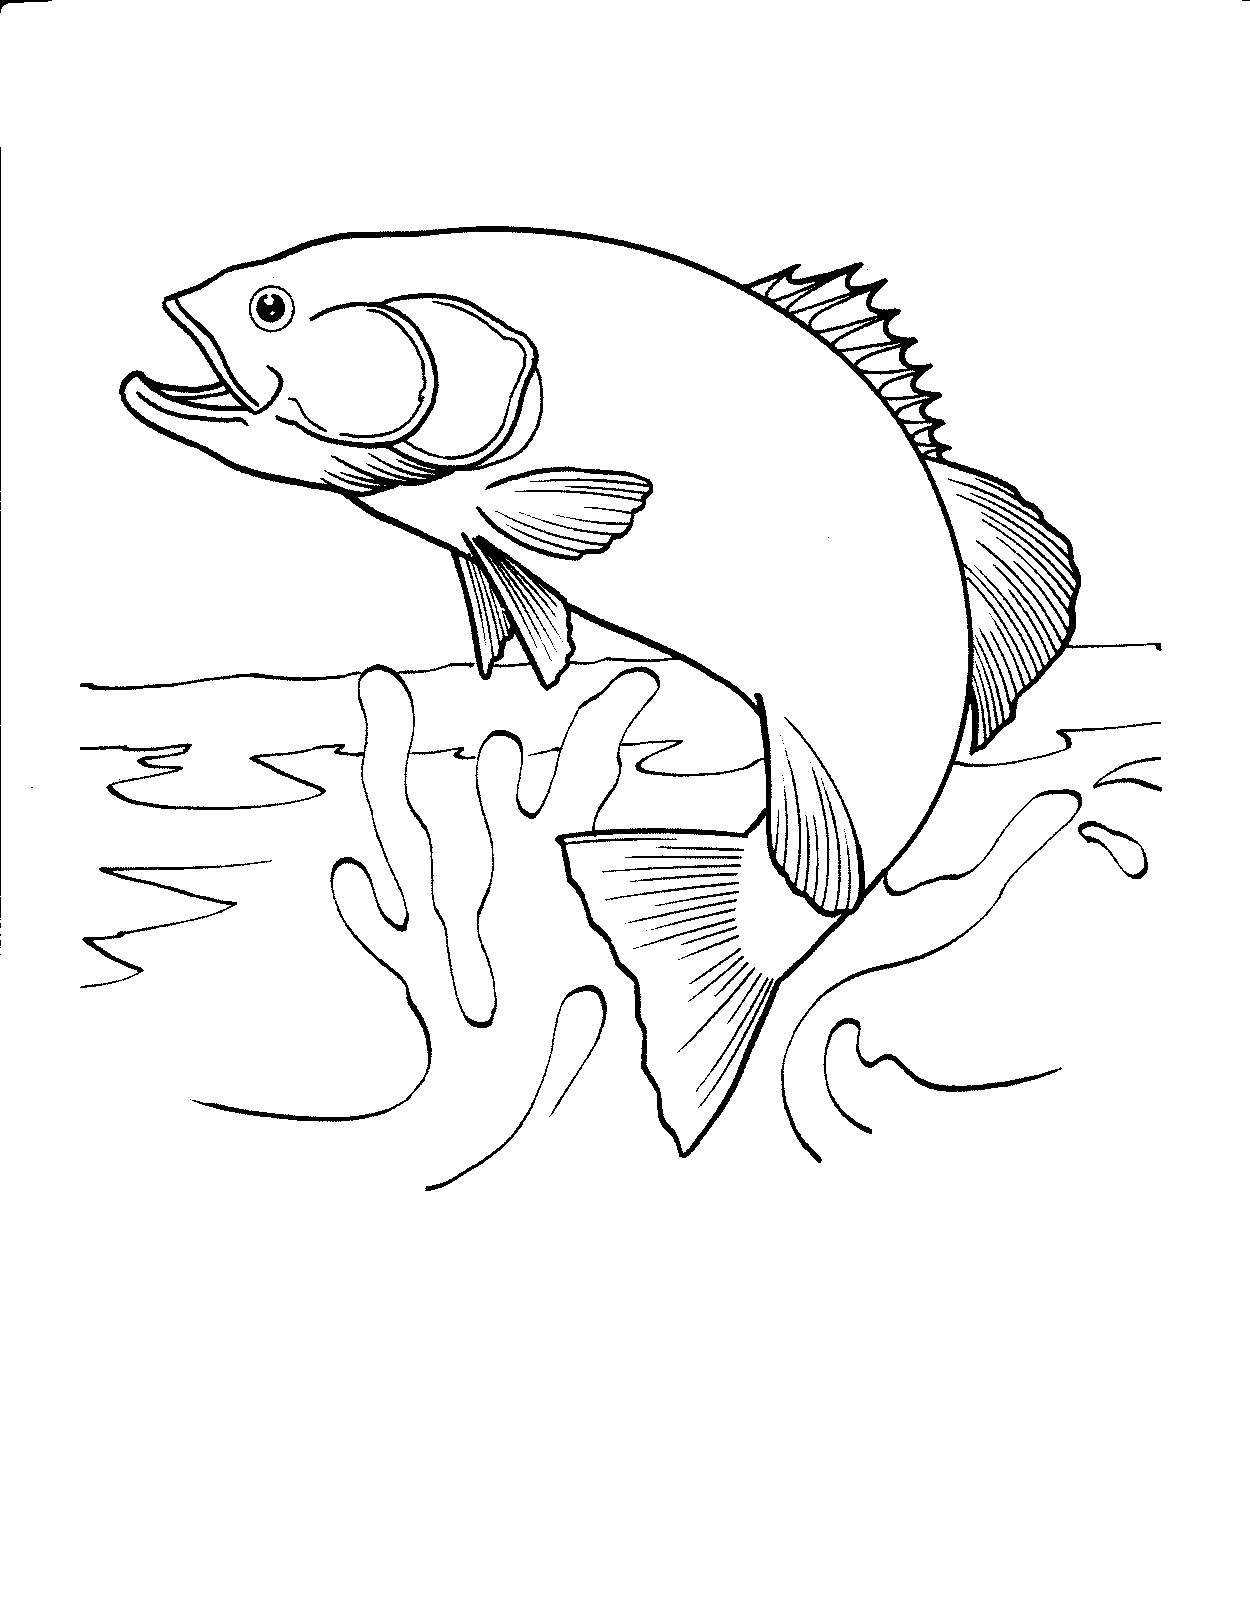 free printable fish coloring for kids of realistic stick animals best crayola products coloring pages Coloring Page Of Fish